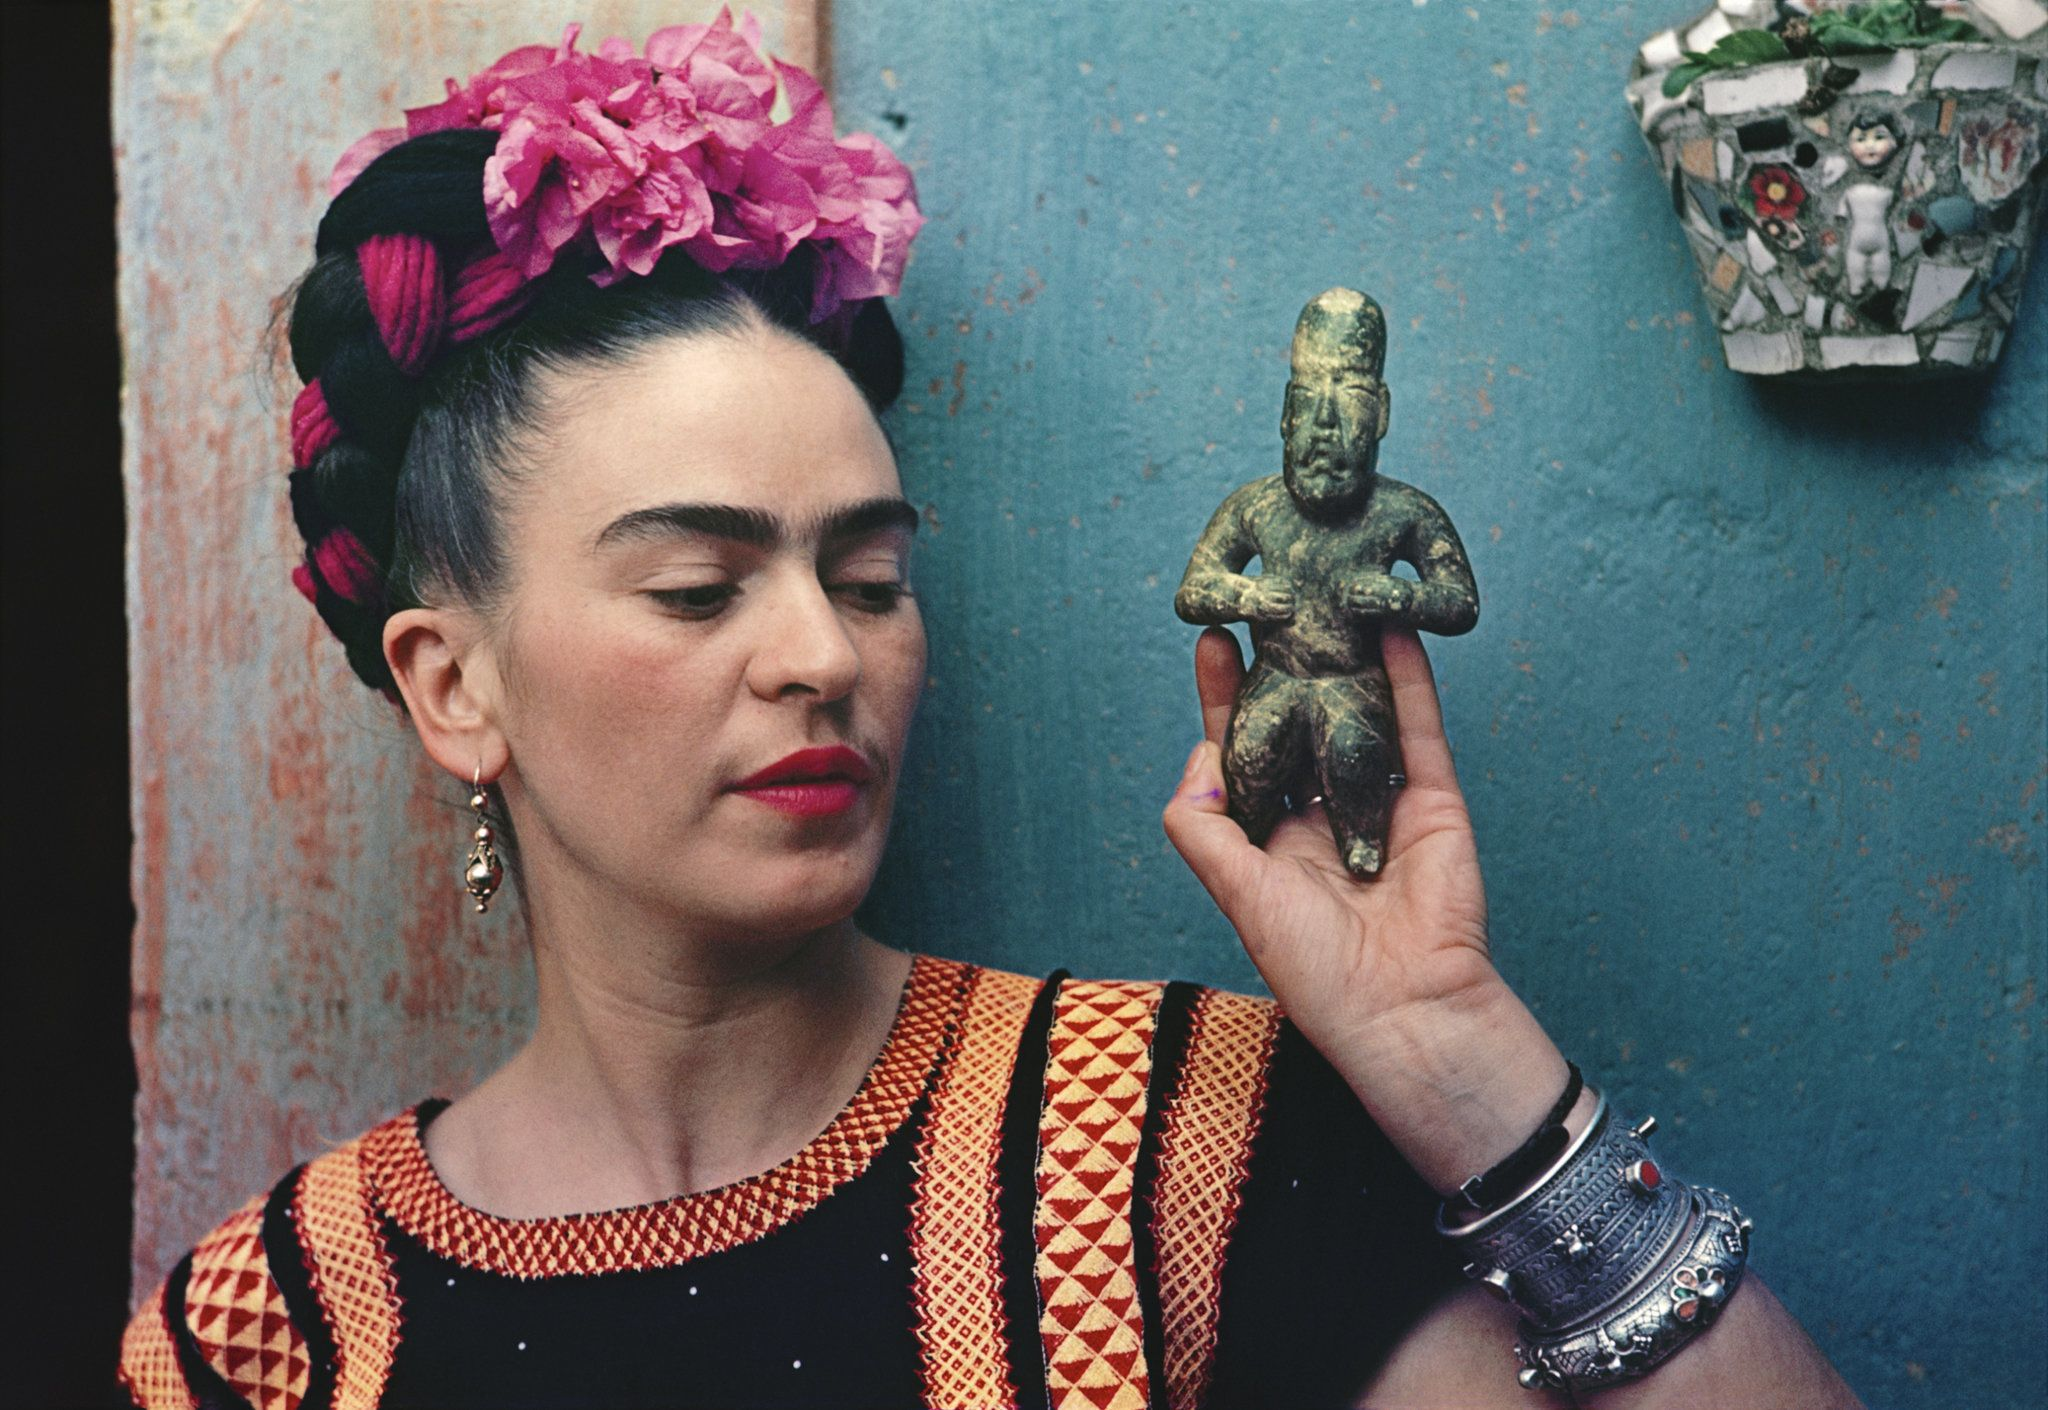 The Style (And Life) Lessons I Learned From The Frida Kahlo V&A